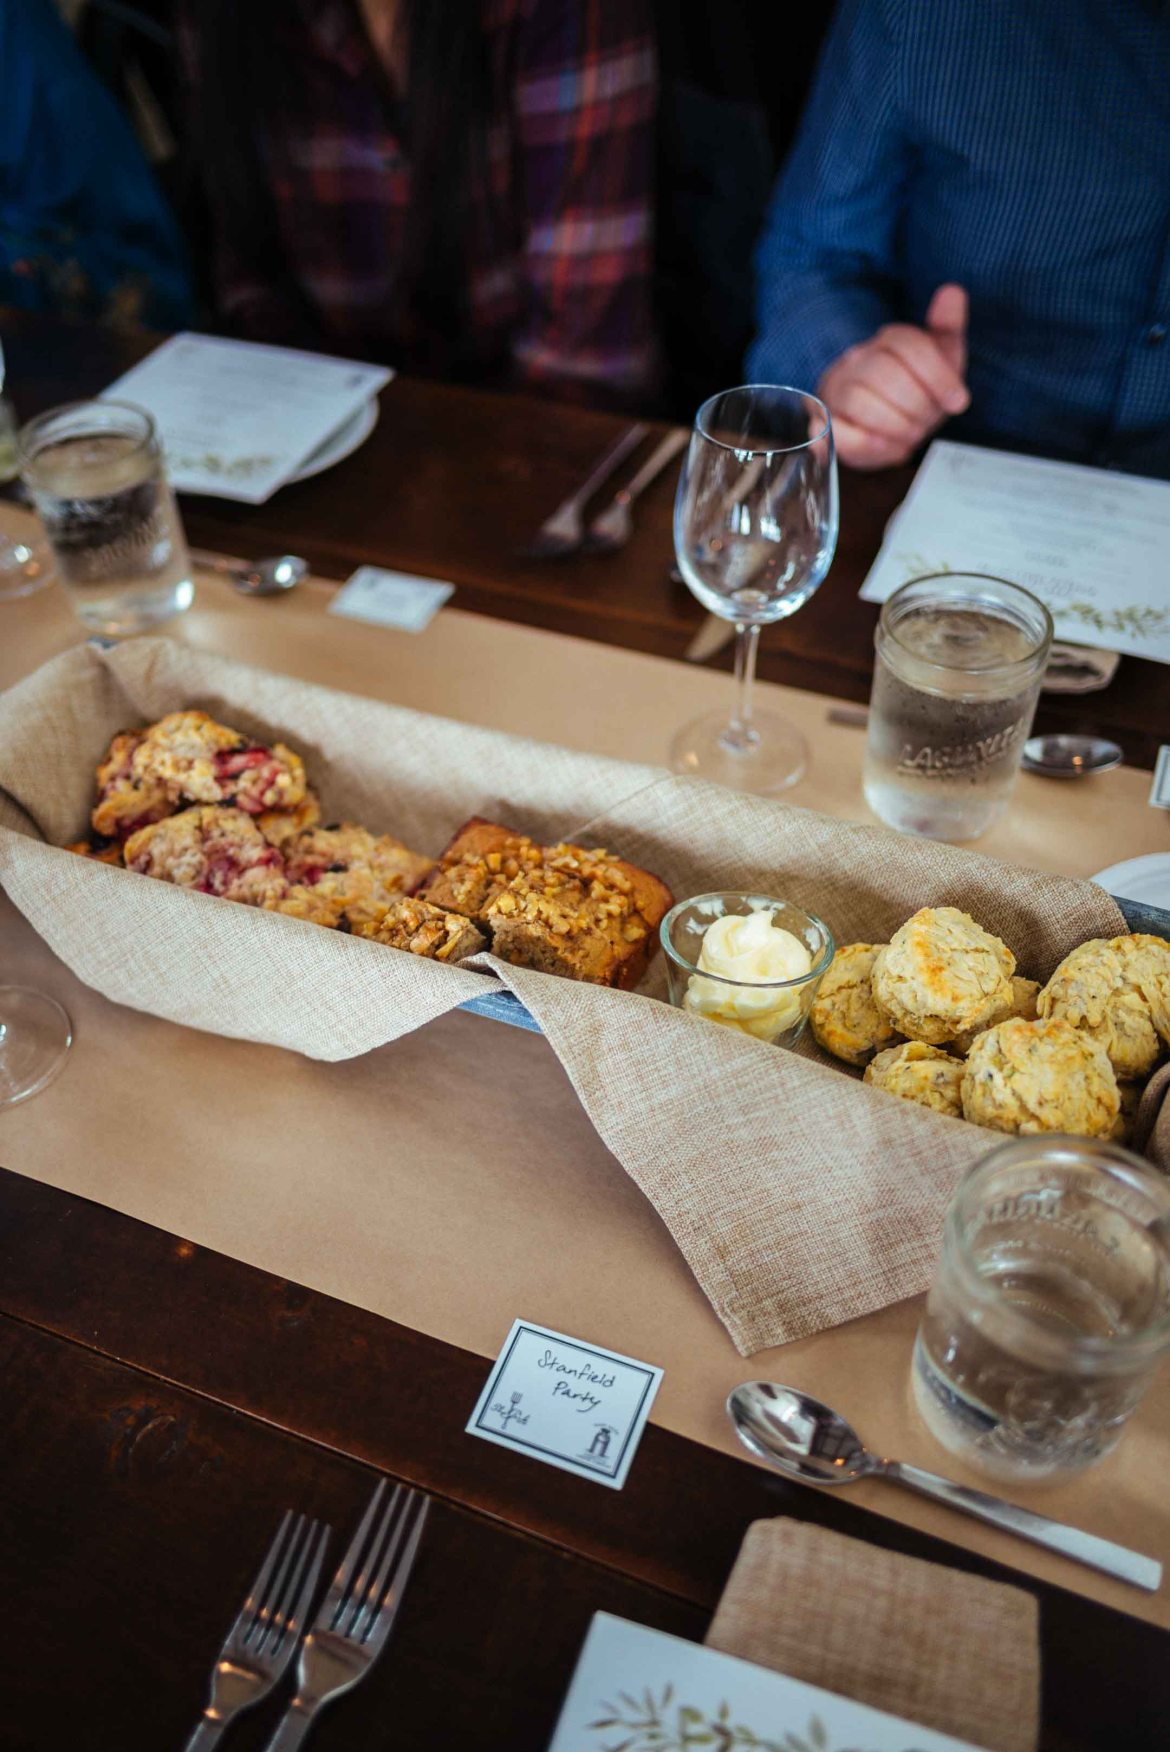 The Taste Edit enjoys Muffins and pastries Point Reyes Farmstead Creamery